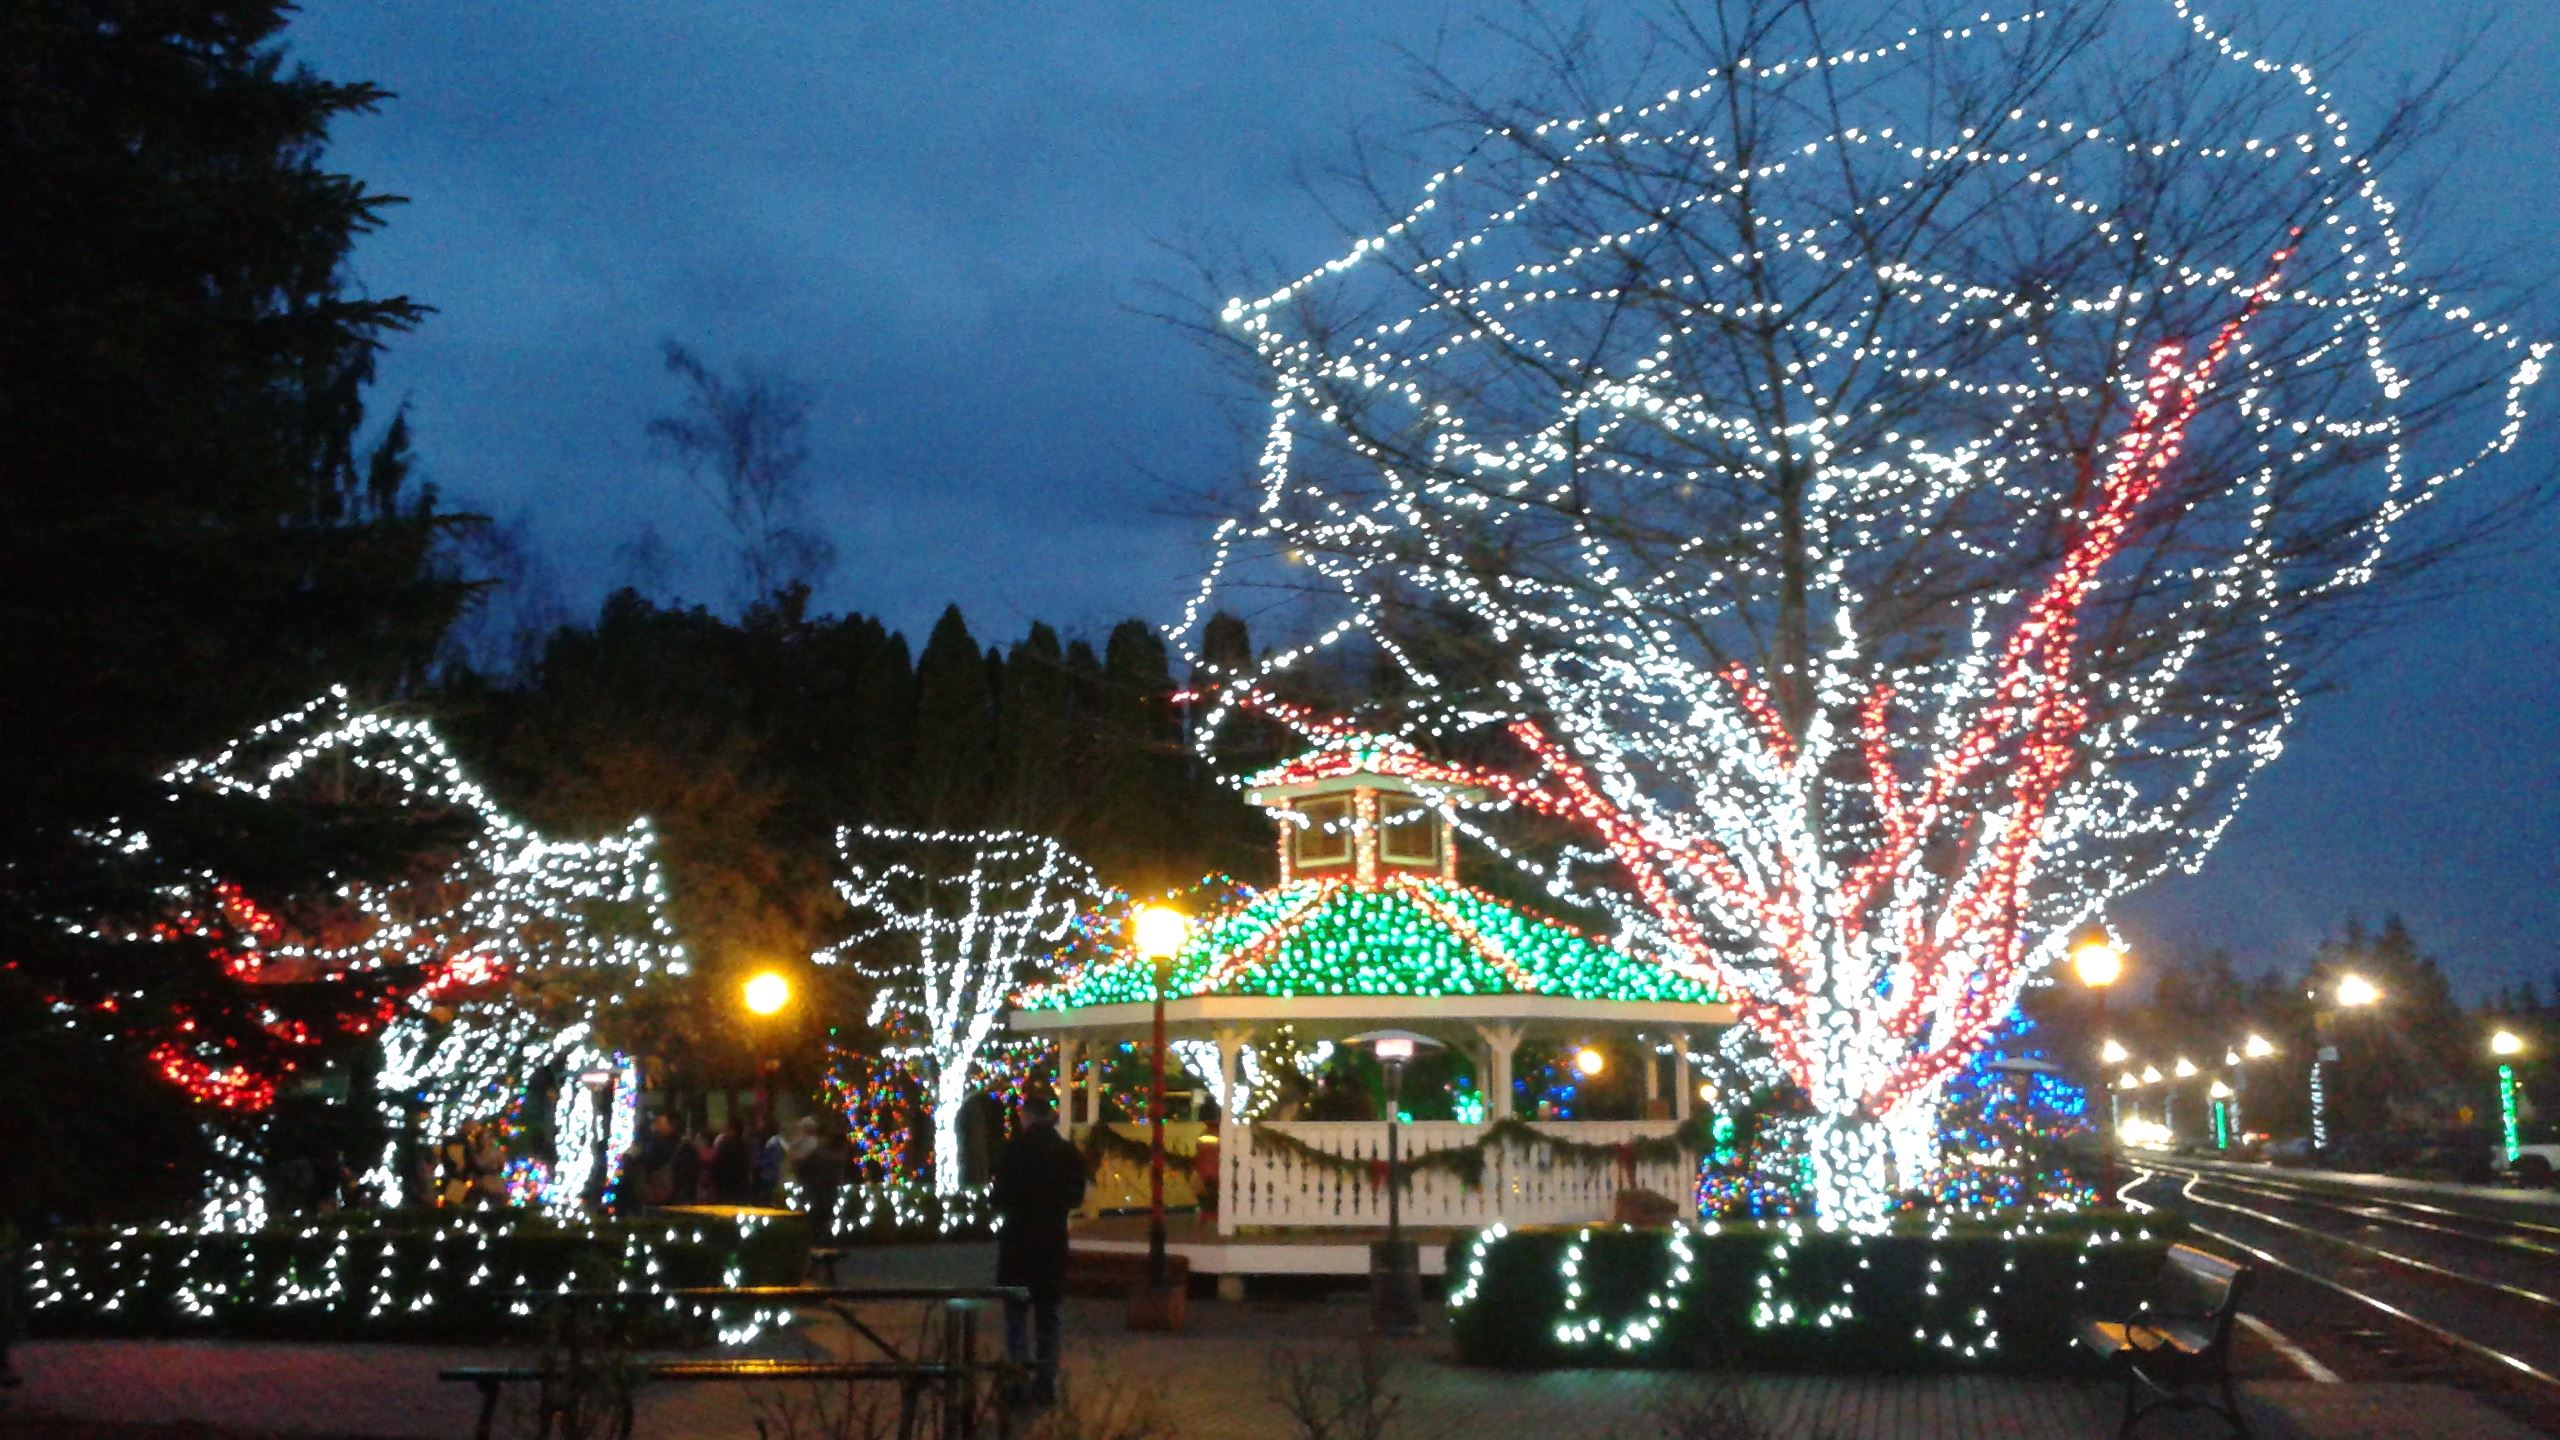 This is a photo of the Railroad Park Gazebo during Snoqualmie Winter Lights.